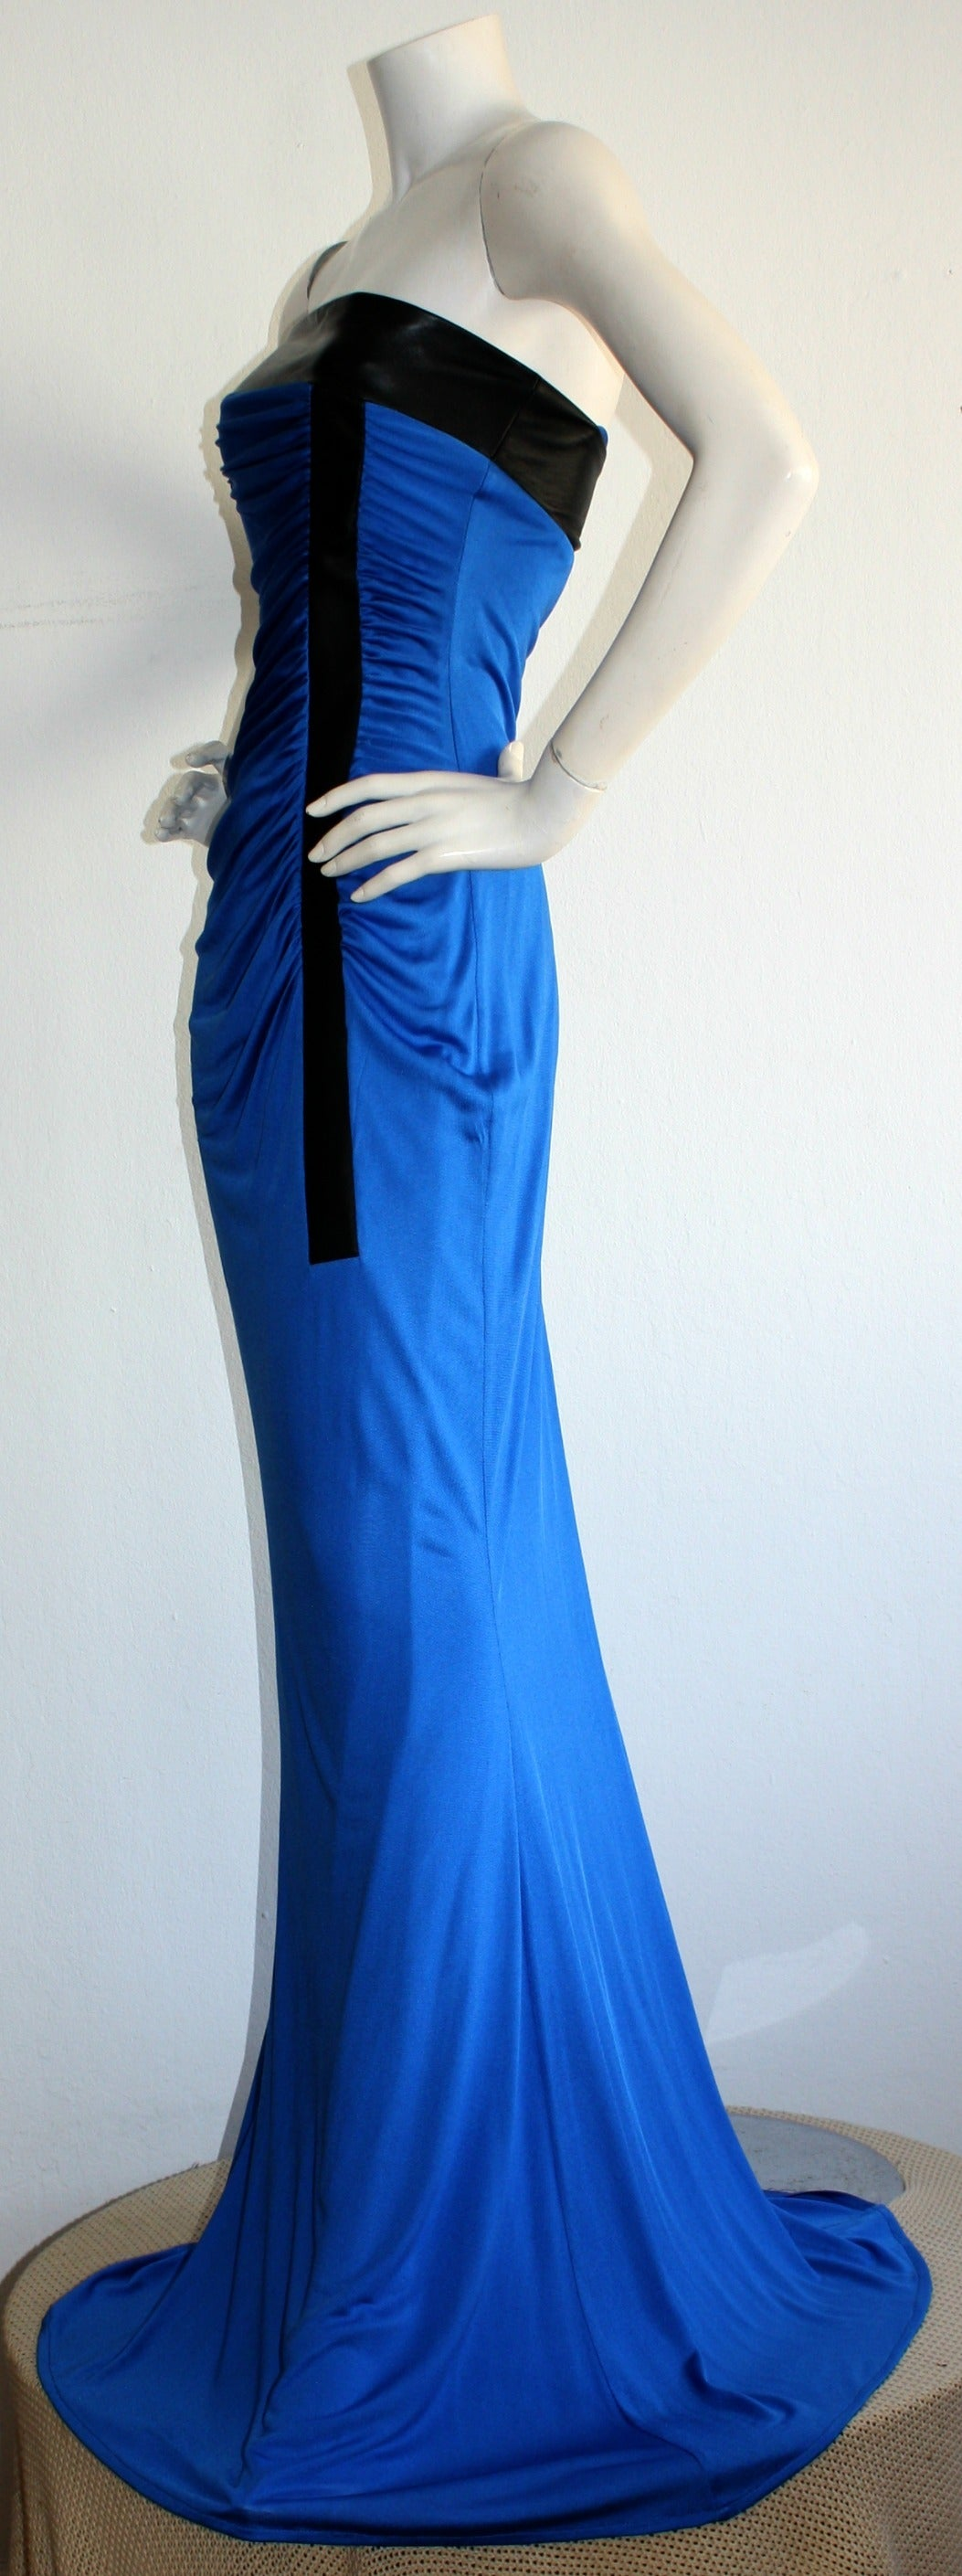 Women's Ivana Trump's Lloyd Klein Couture Blue Silk Jersey & Black Leather Grecian Gown For Sale